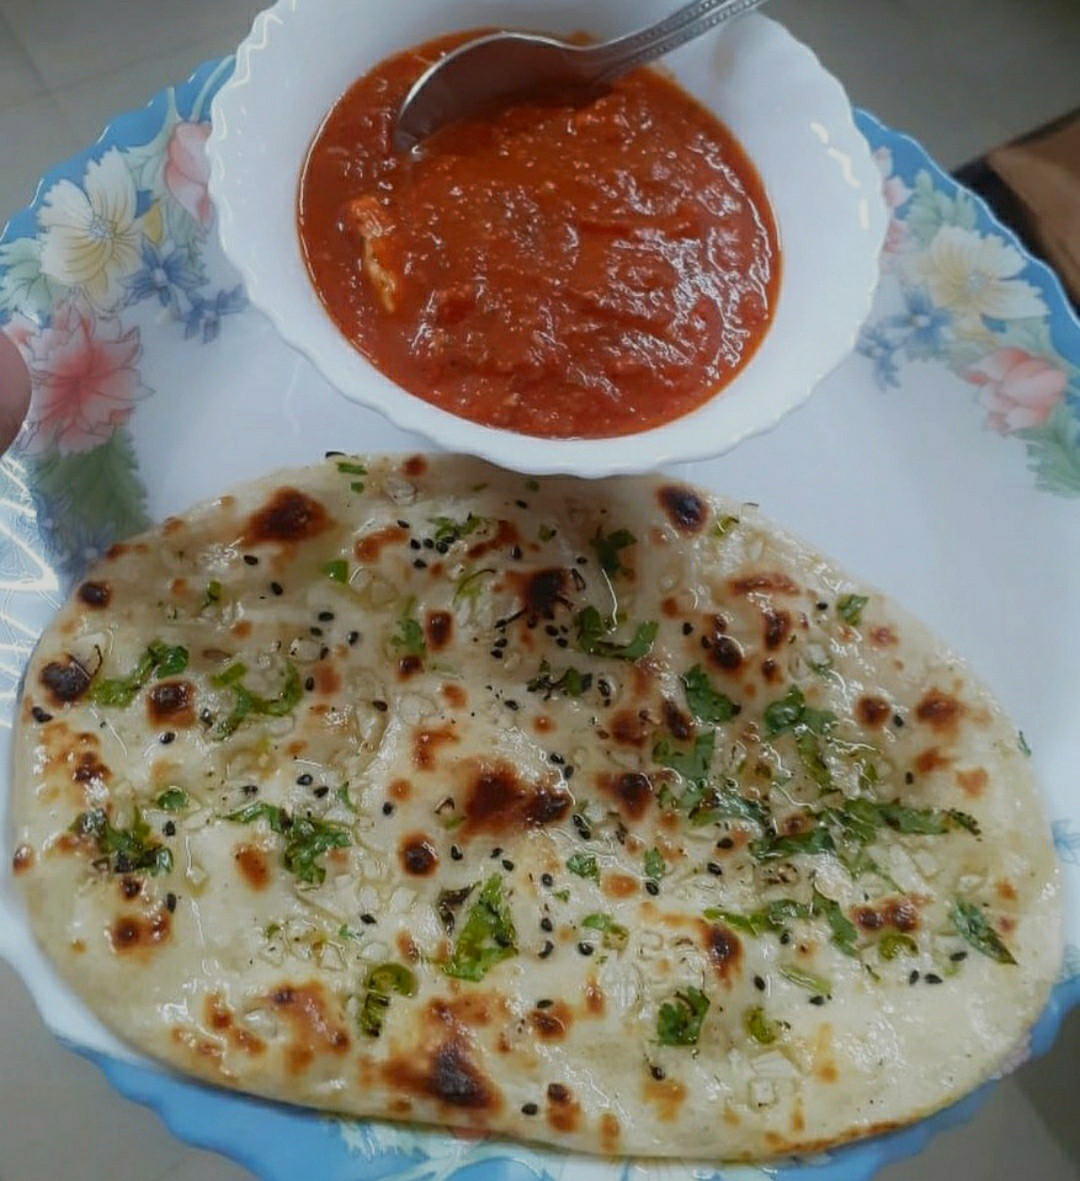 Garlic naan served with hot and spicy paneer butter masala.